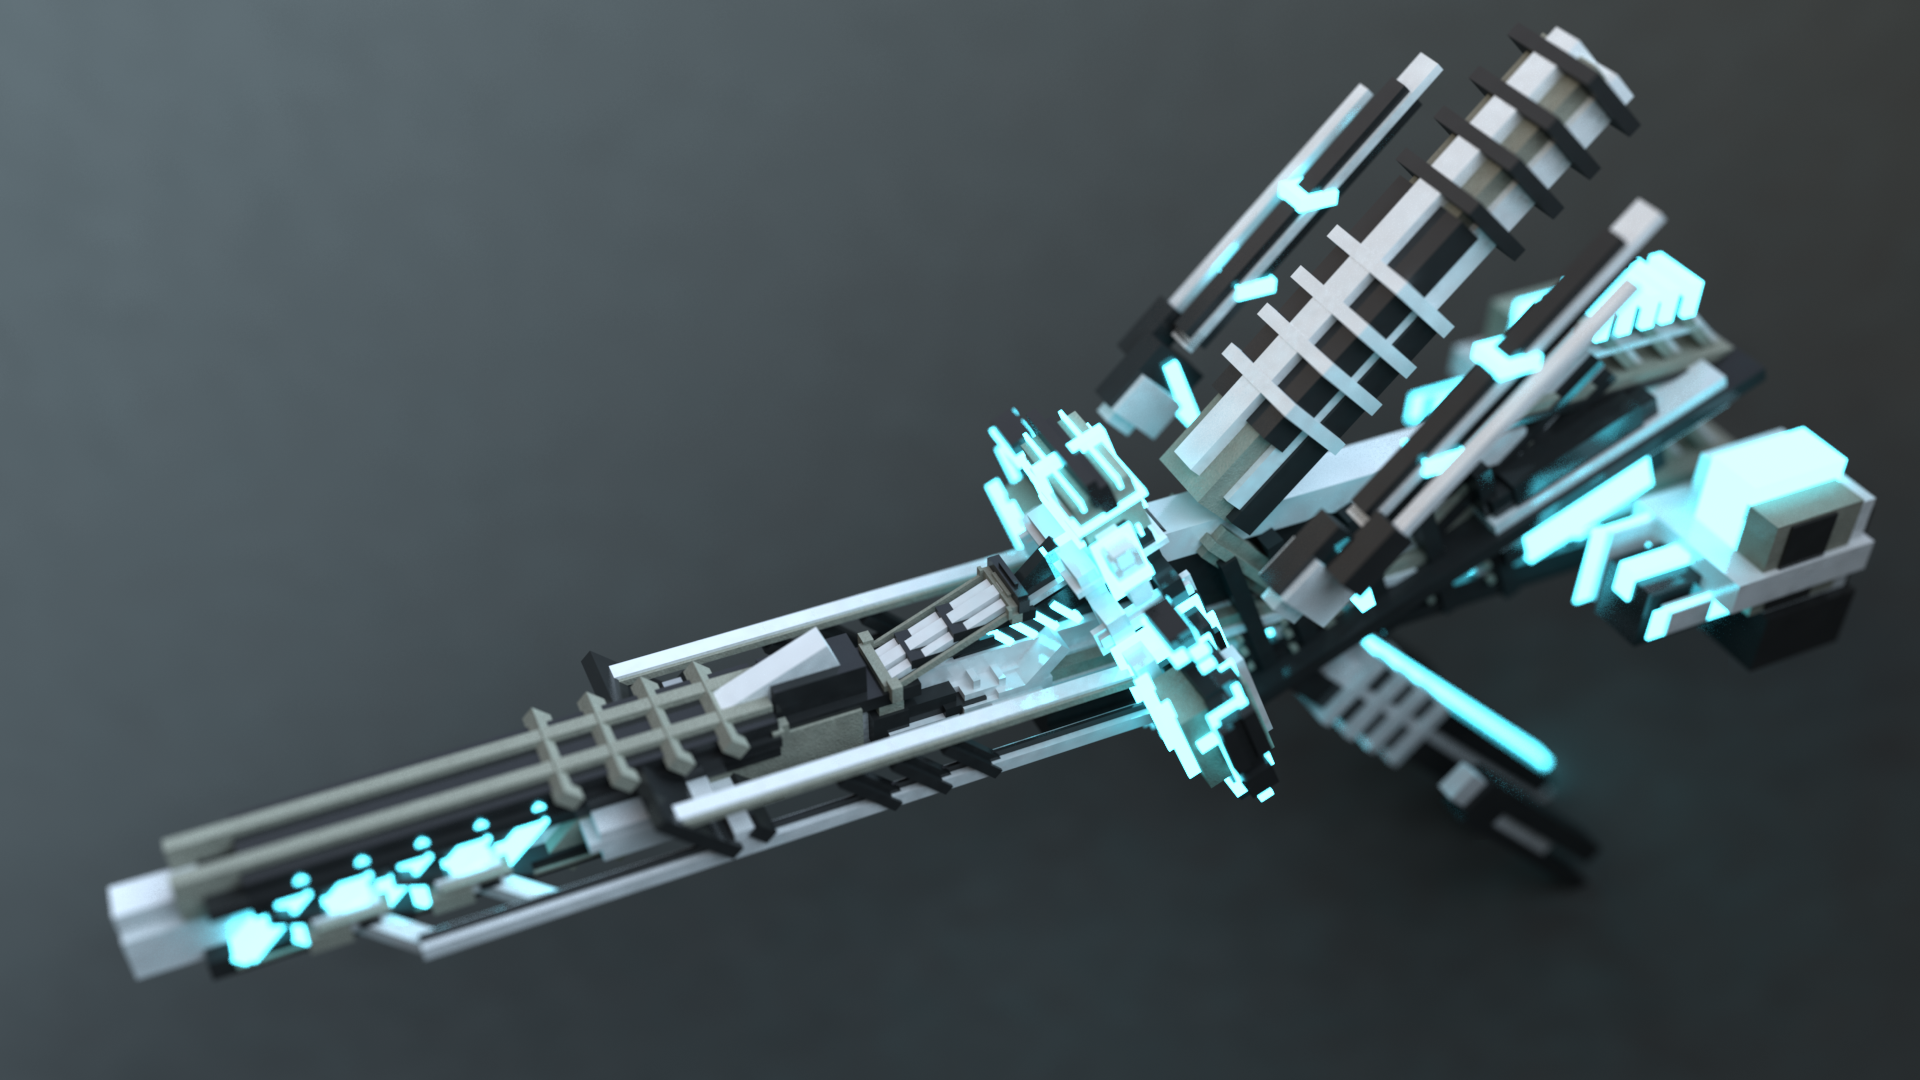 Space Weapon(ColdPotatoObject)